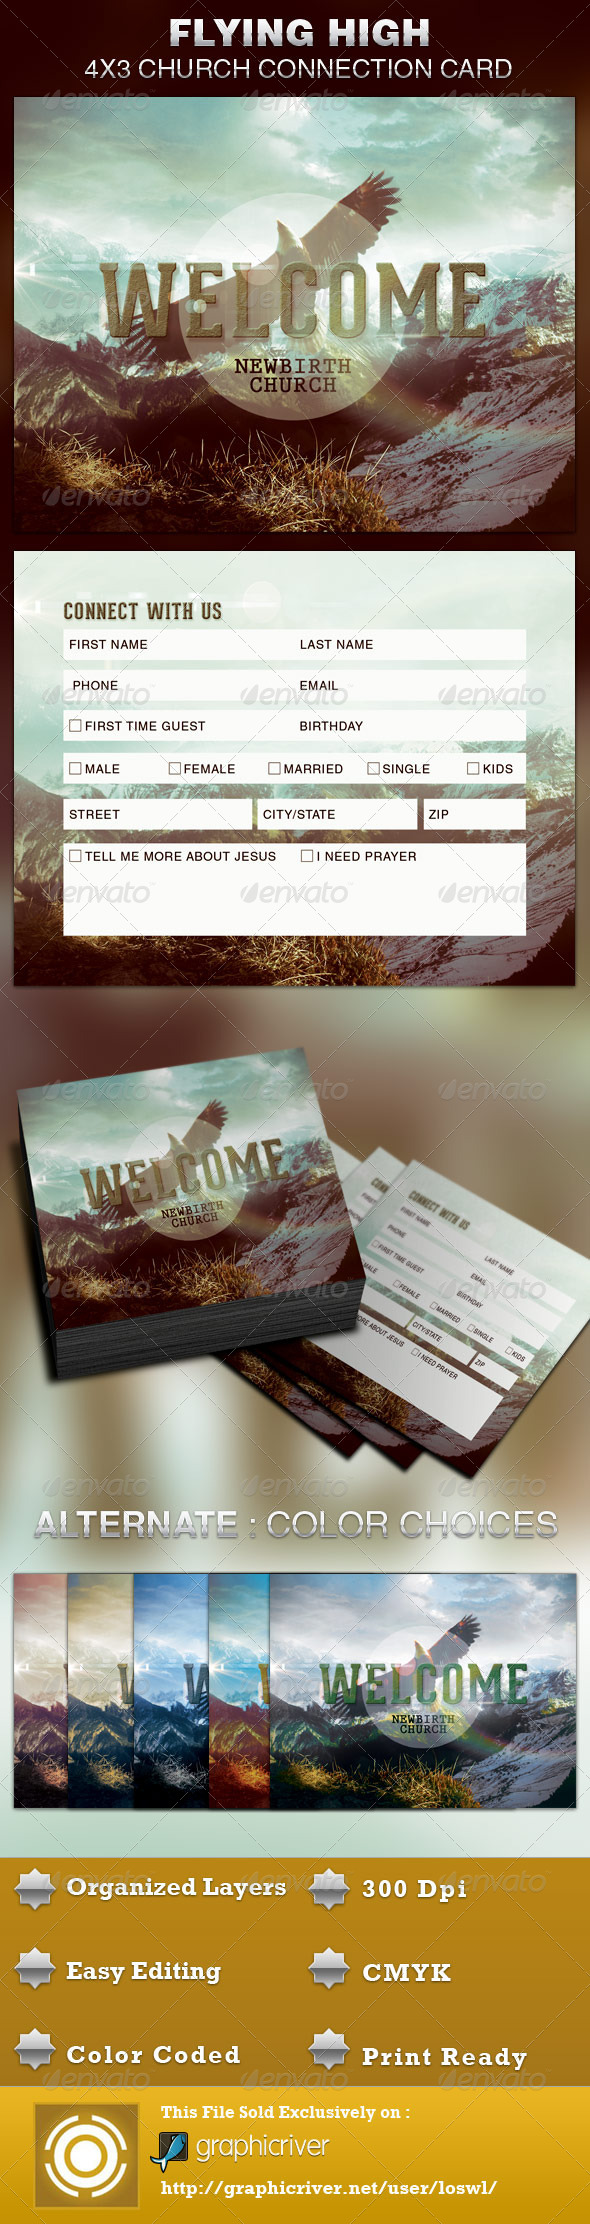 flying high church connection card template graphicriver